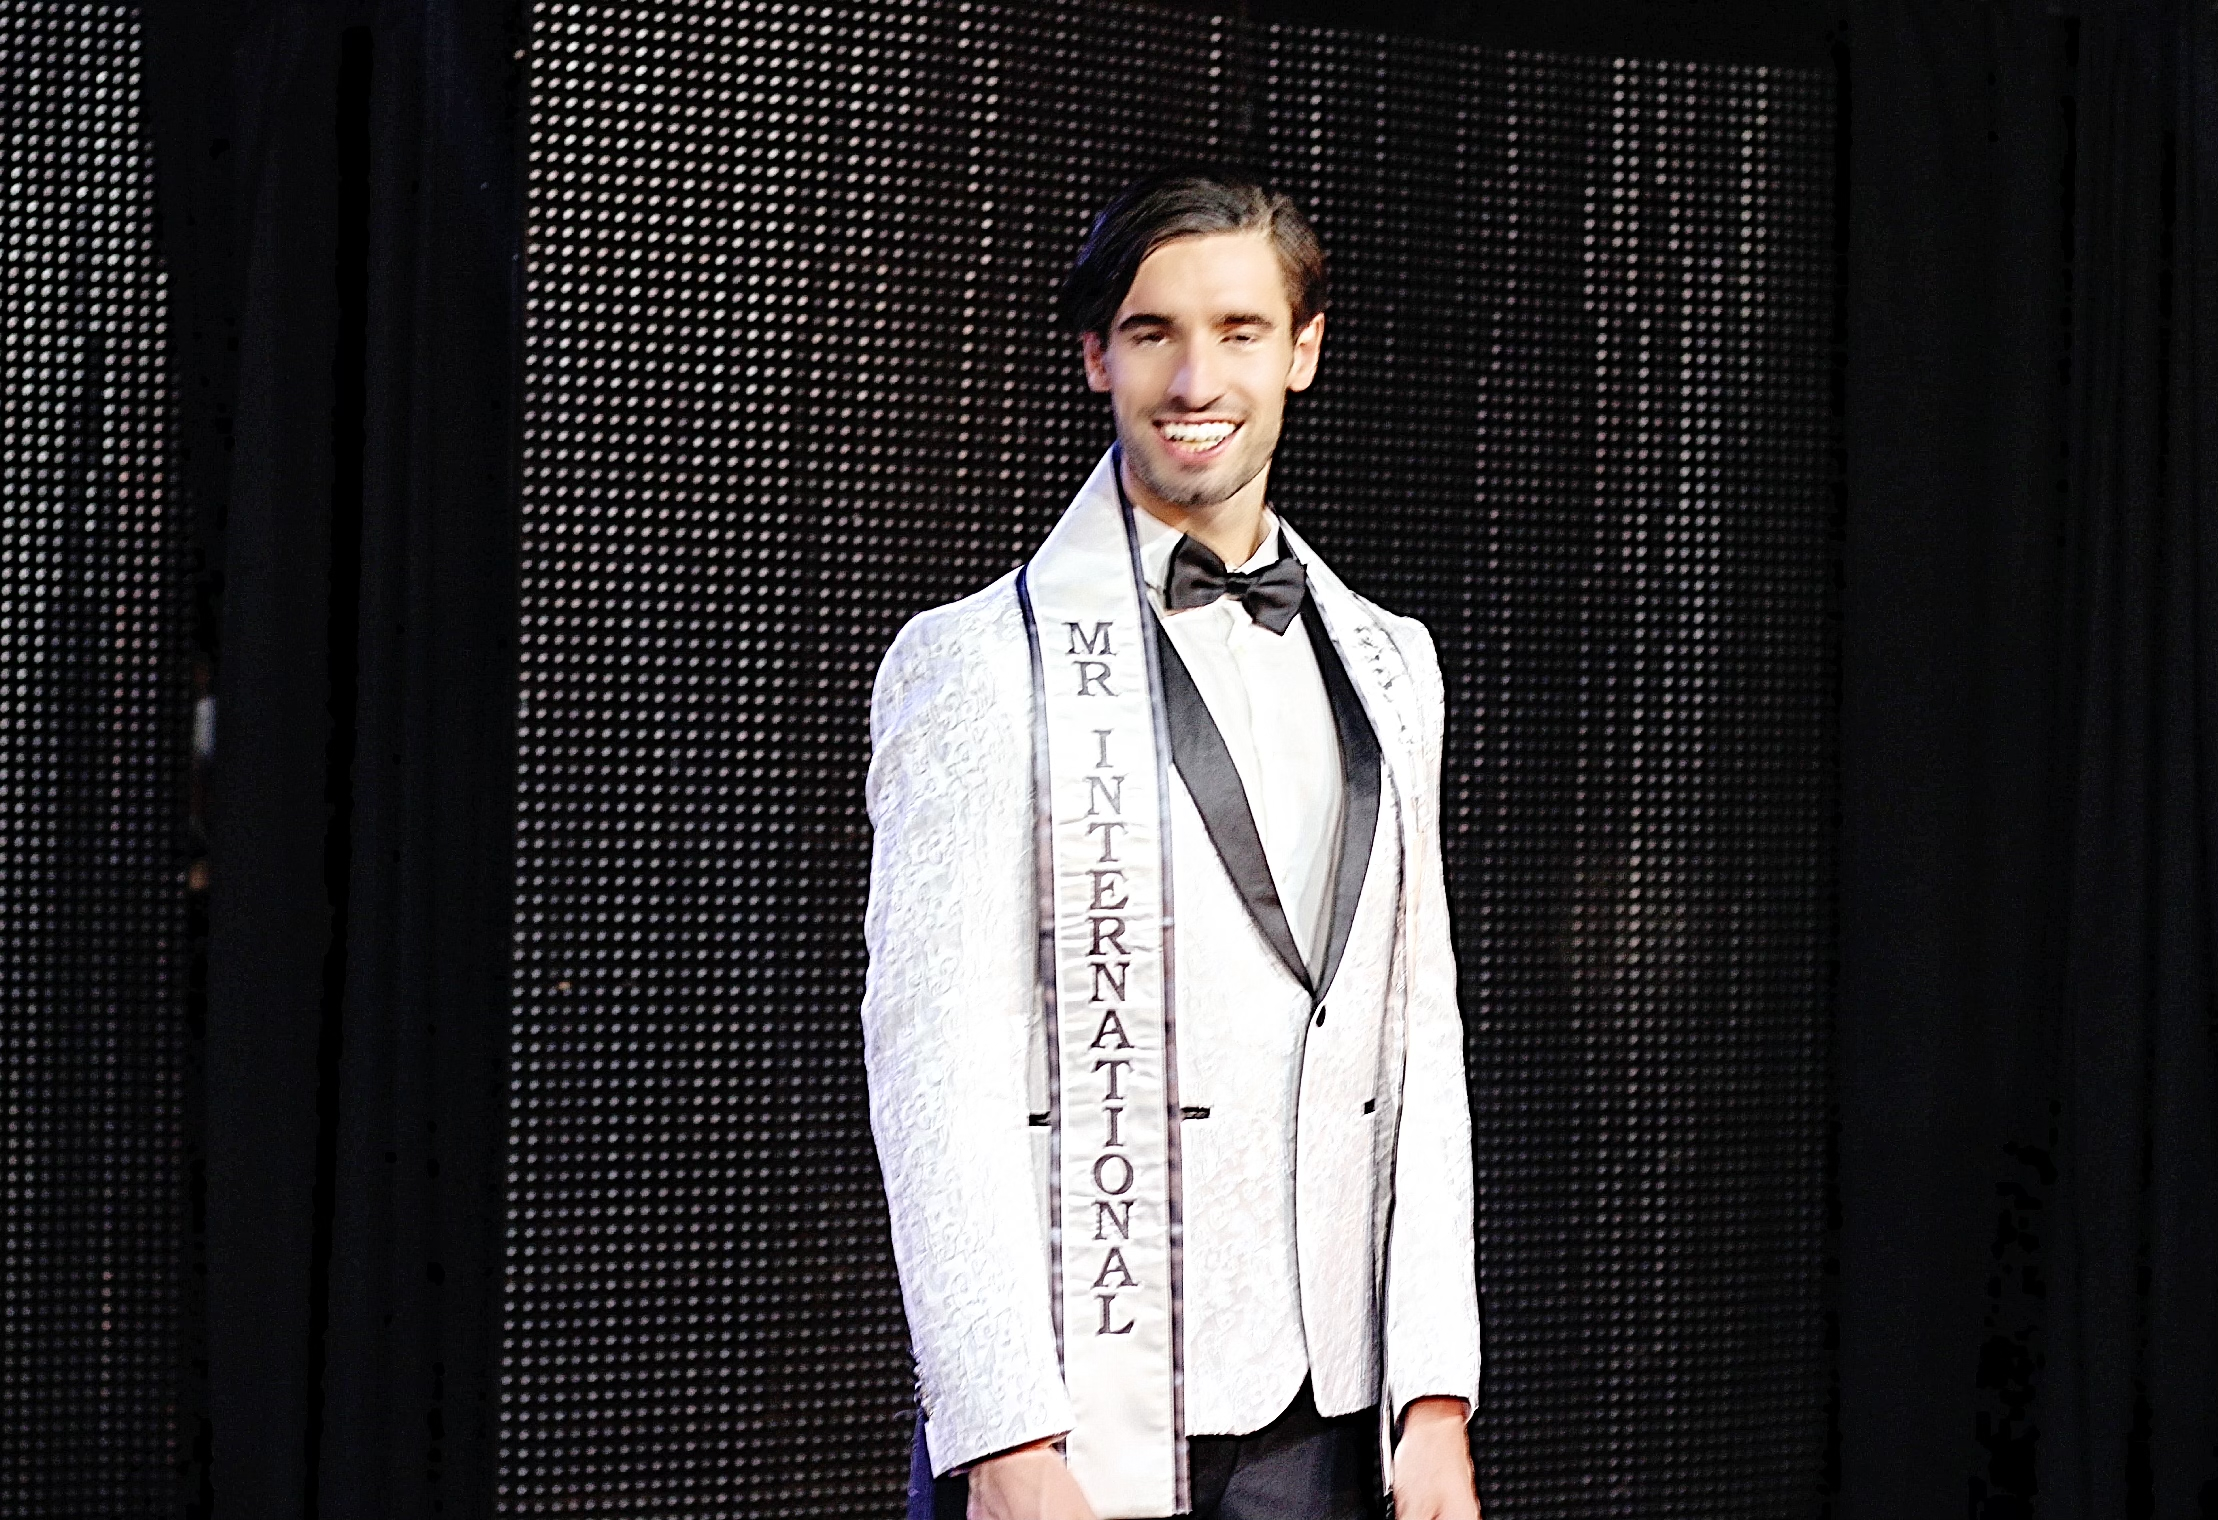 MISTER INTERNATIONAL SPAIN ES UN 'KEN' EXTREMEÑO